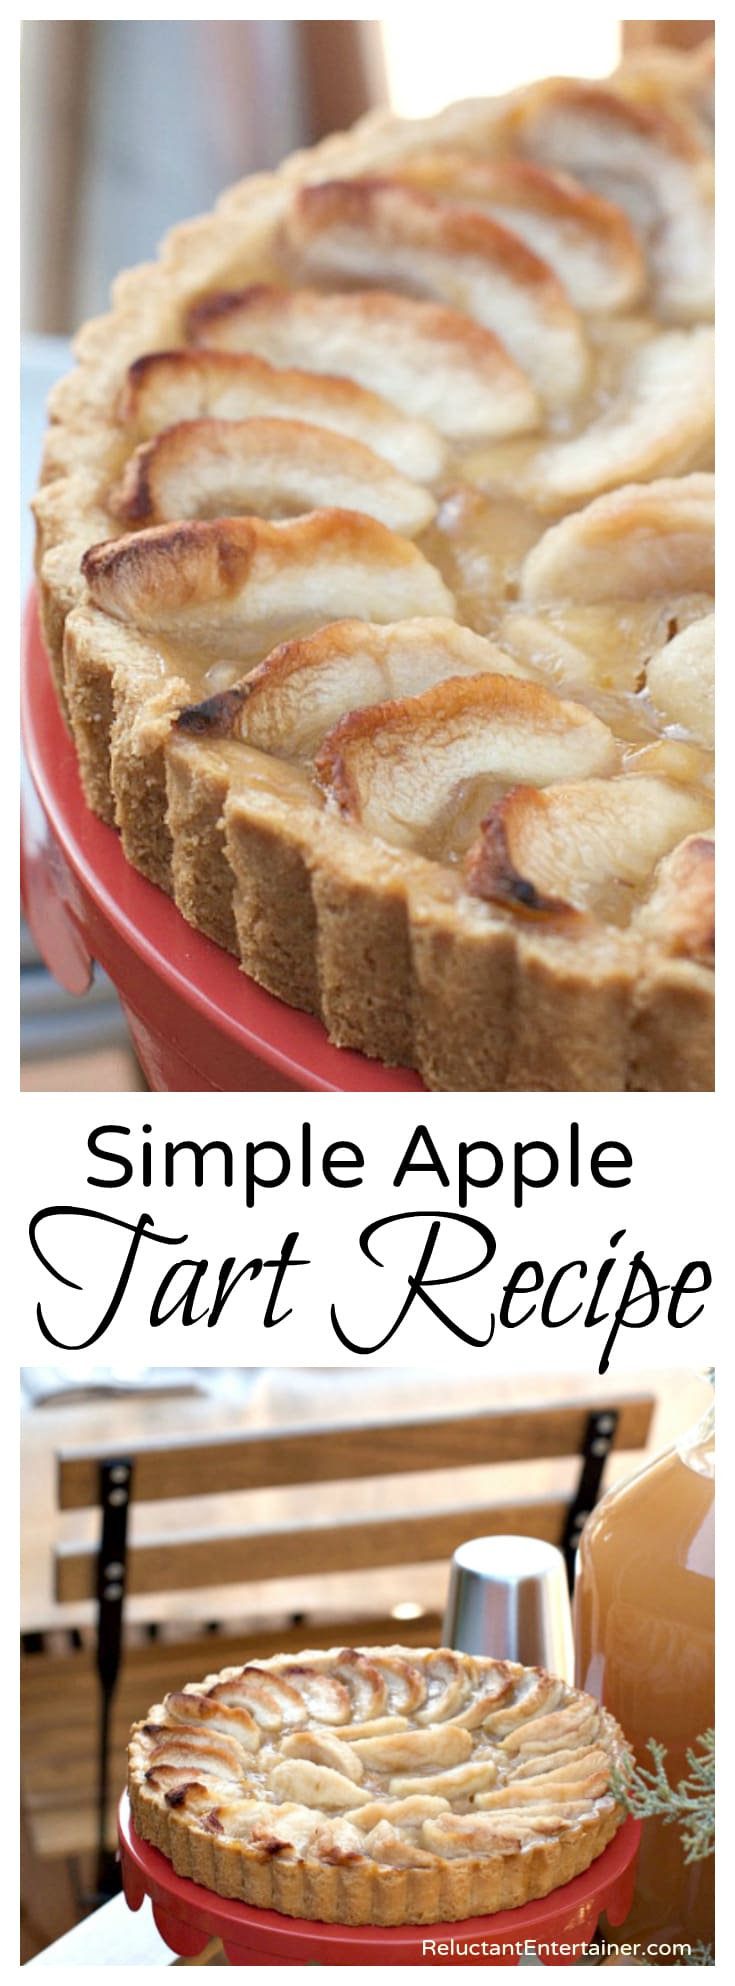 Simple Apple Tart Recipe